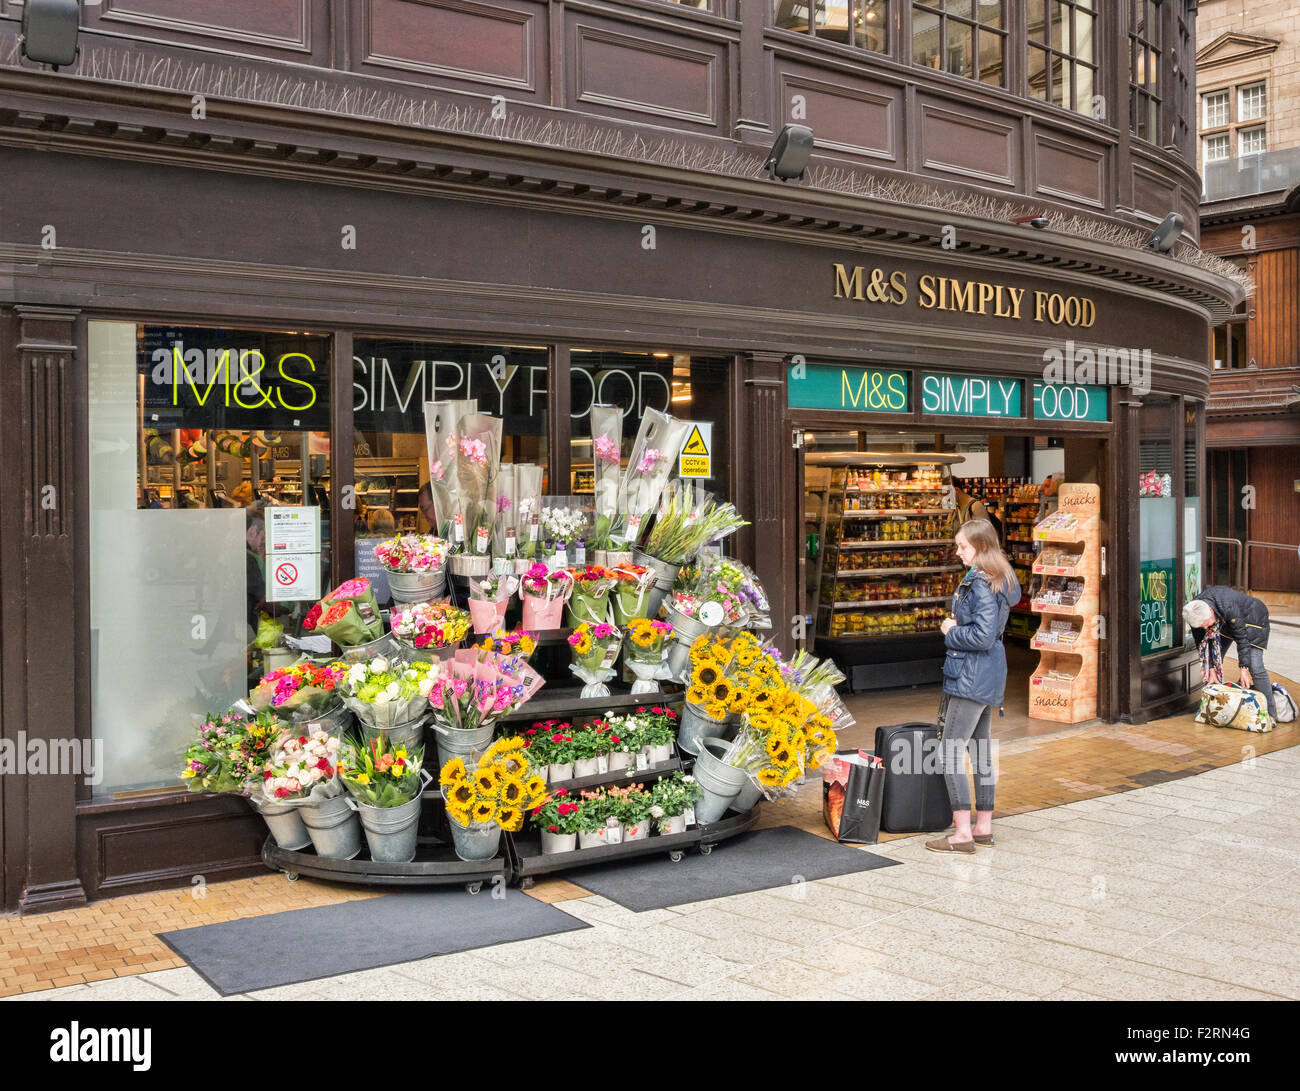 M&S Simply Food, Glasgow Central Station, Glasgow, Scotland, UK. - Stock Image